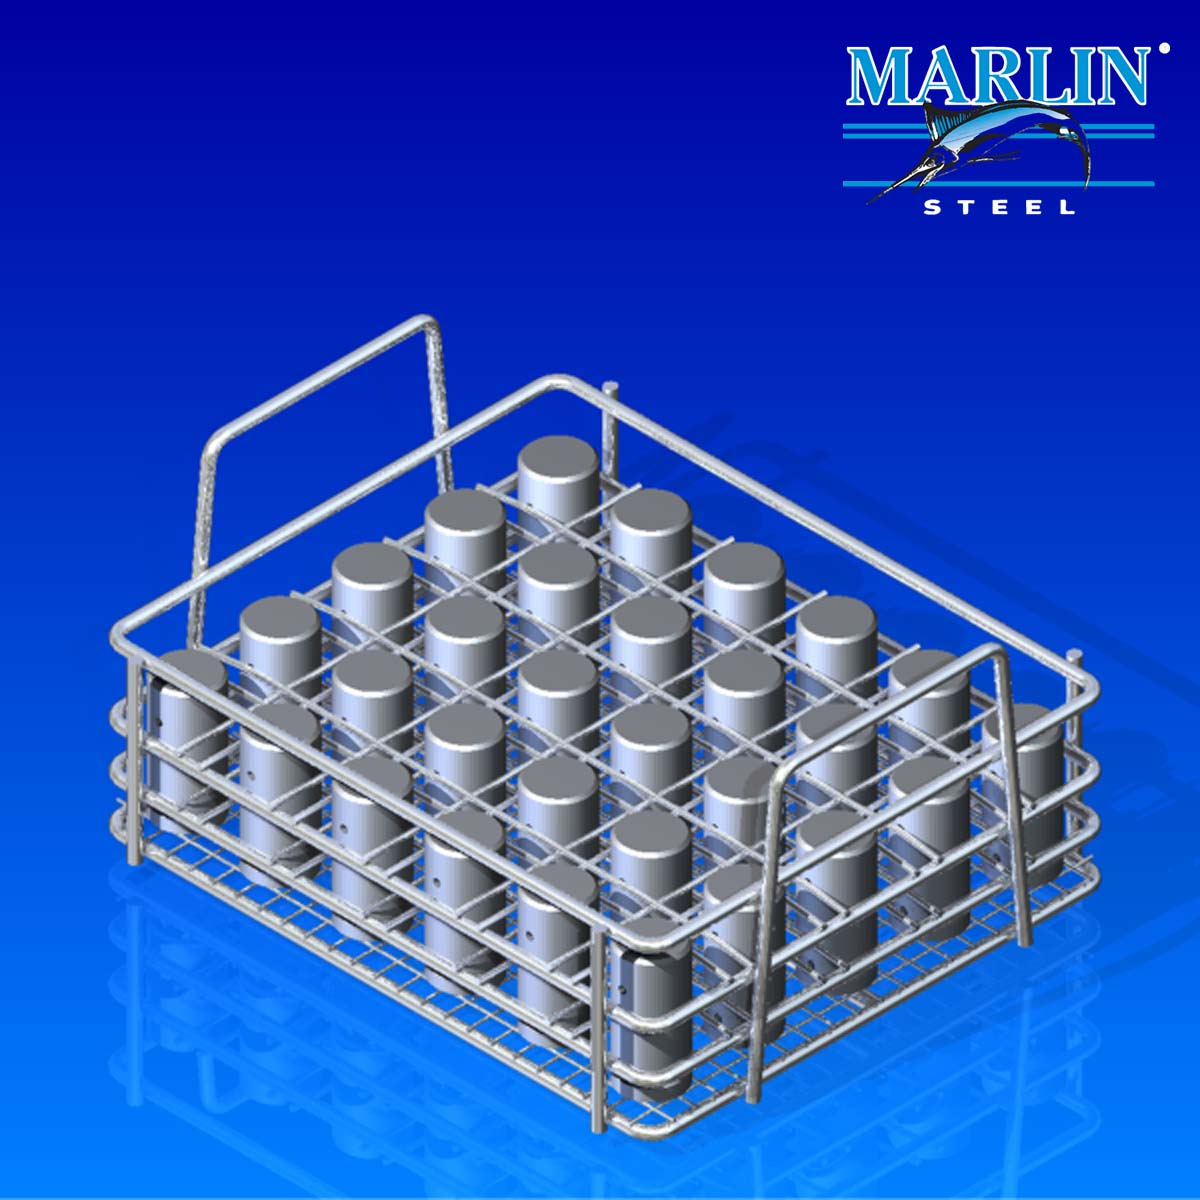 Marlin Steel Wire Material Handling Basket 837001